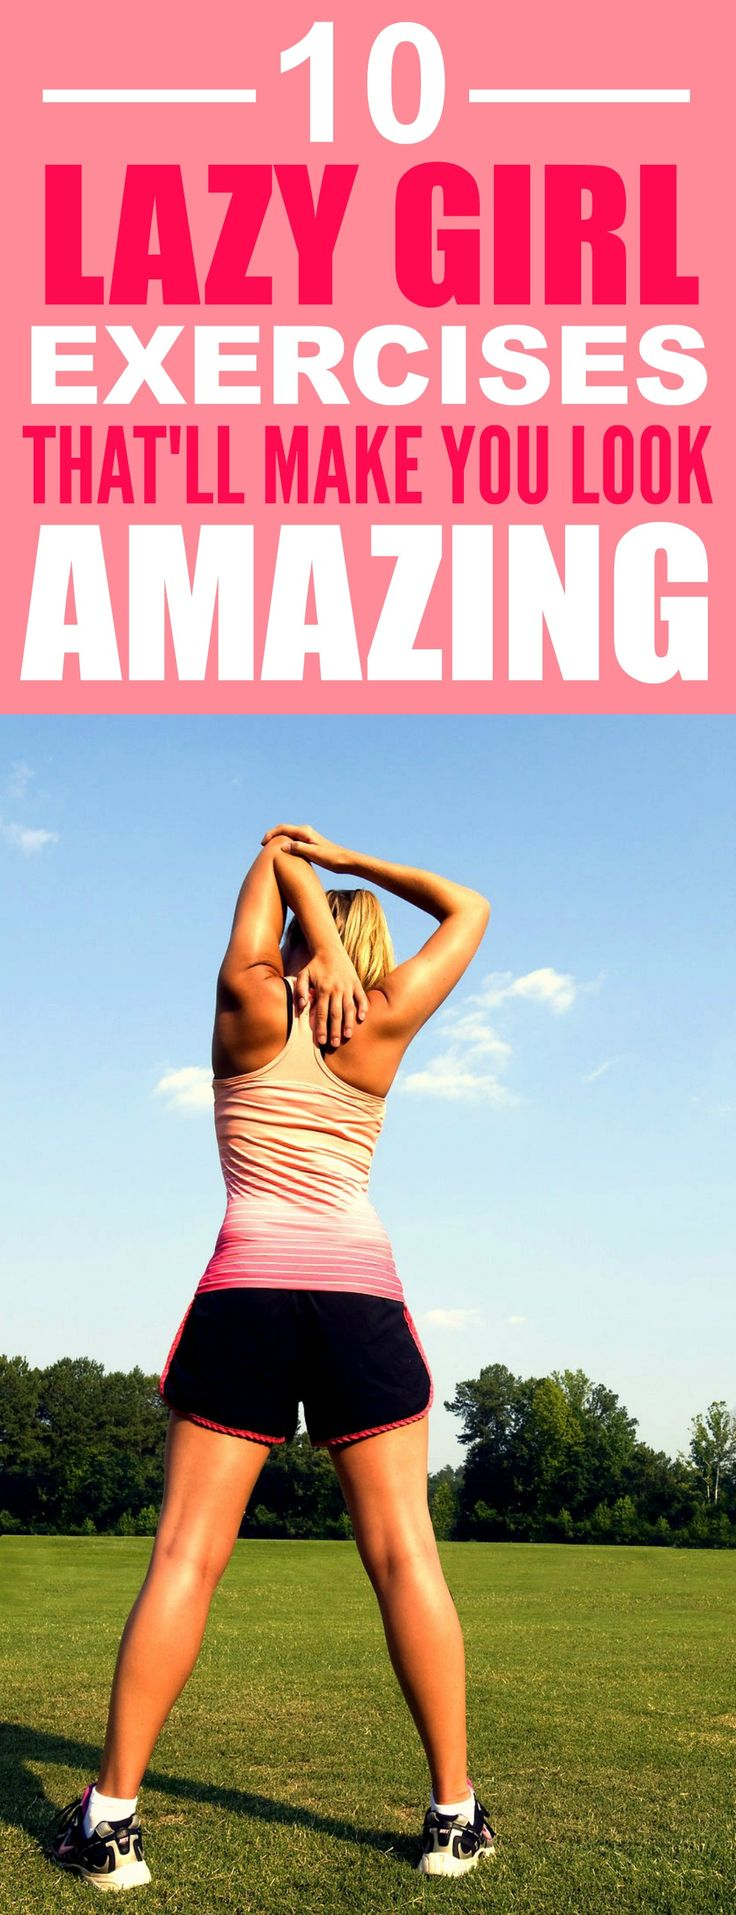 These 10 Lazy Girl Exercises are THE BEST! I'm so glad I found these AWESOME tips! Now I can actually lose weight on my own pace! Definitely pinning for later!